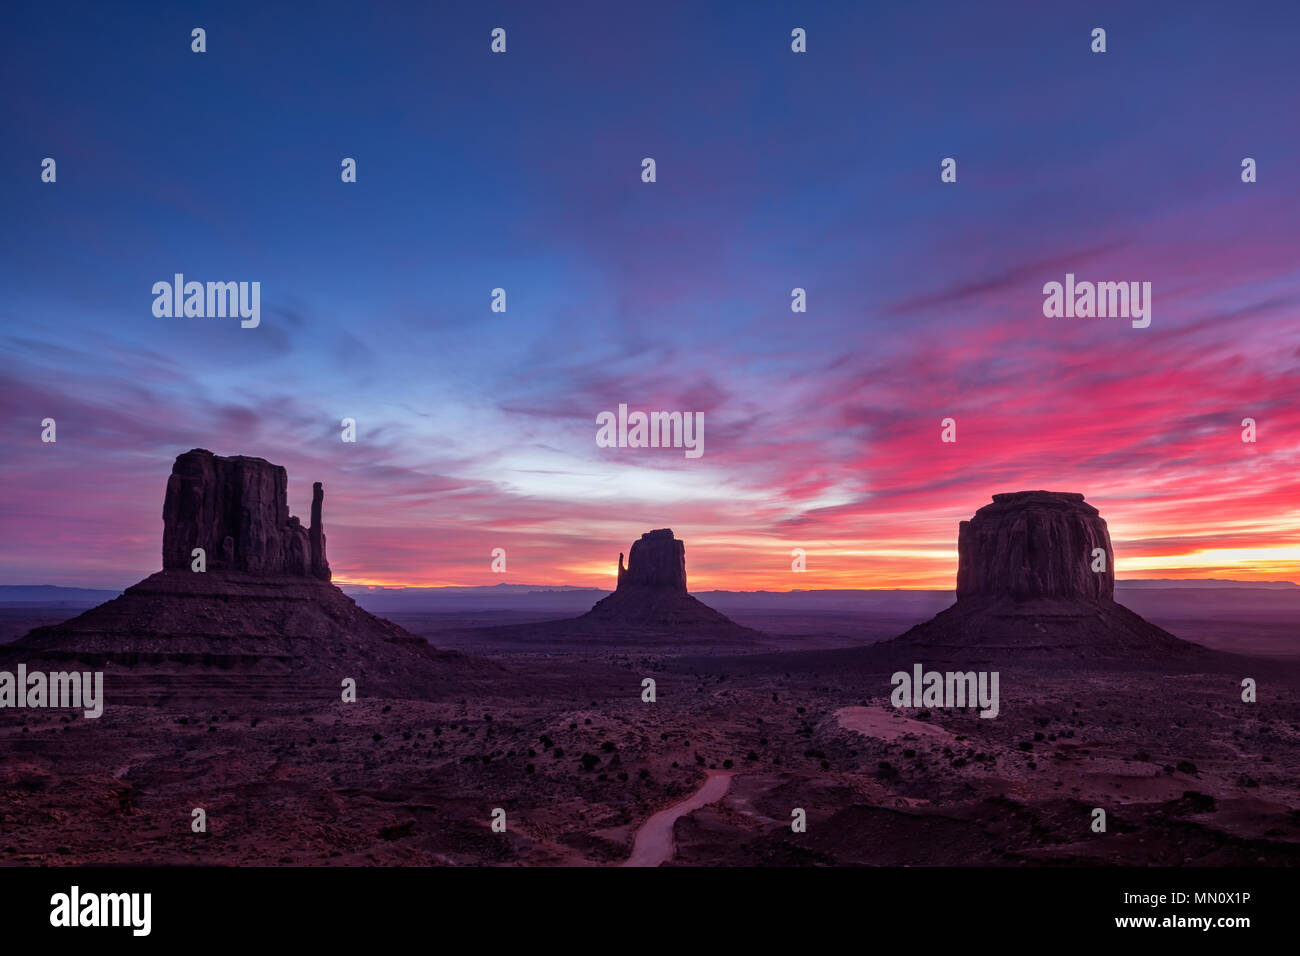 Bunte sunrise Landschaft Blick auf Monument Valley National Park, Arizona, USA Stockfoto